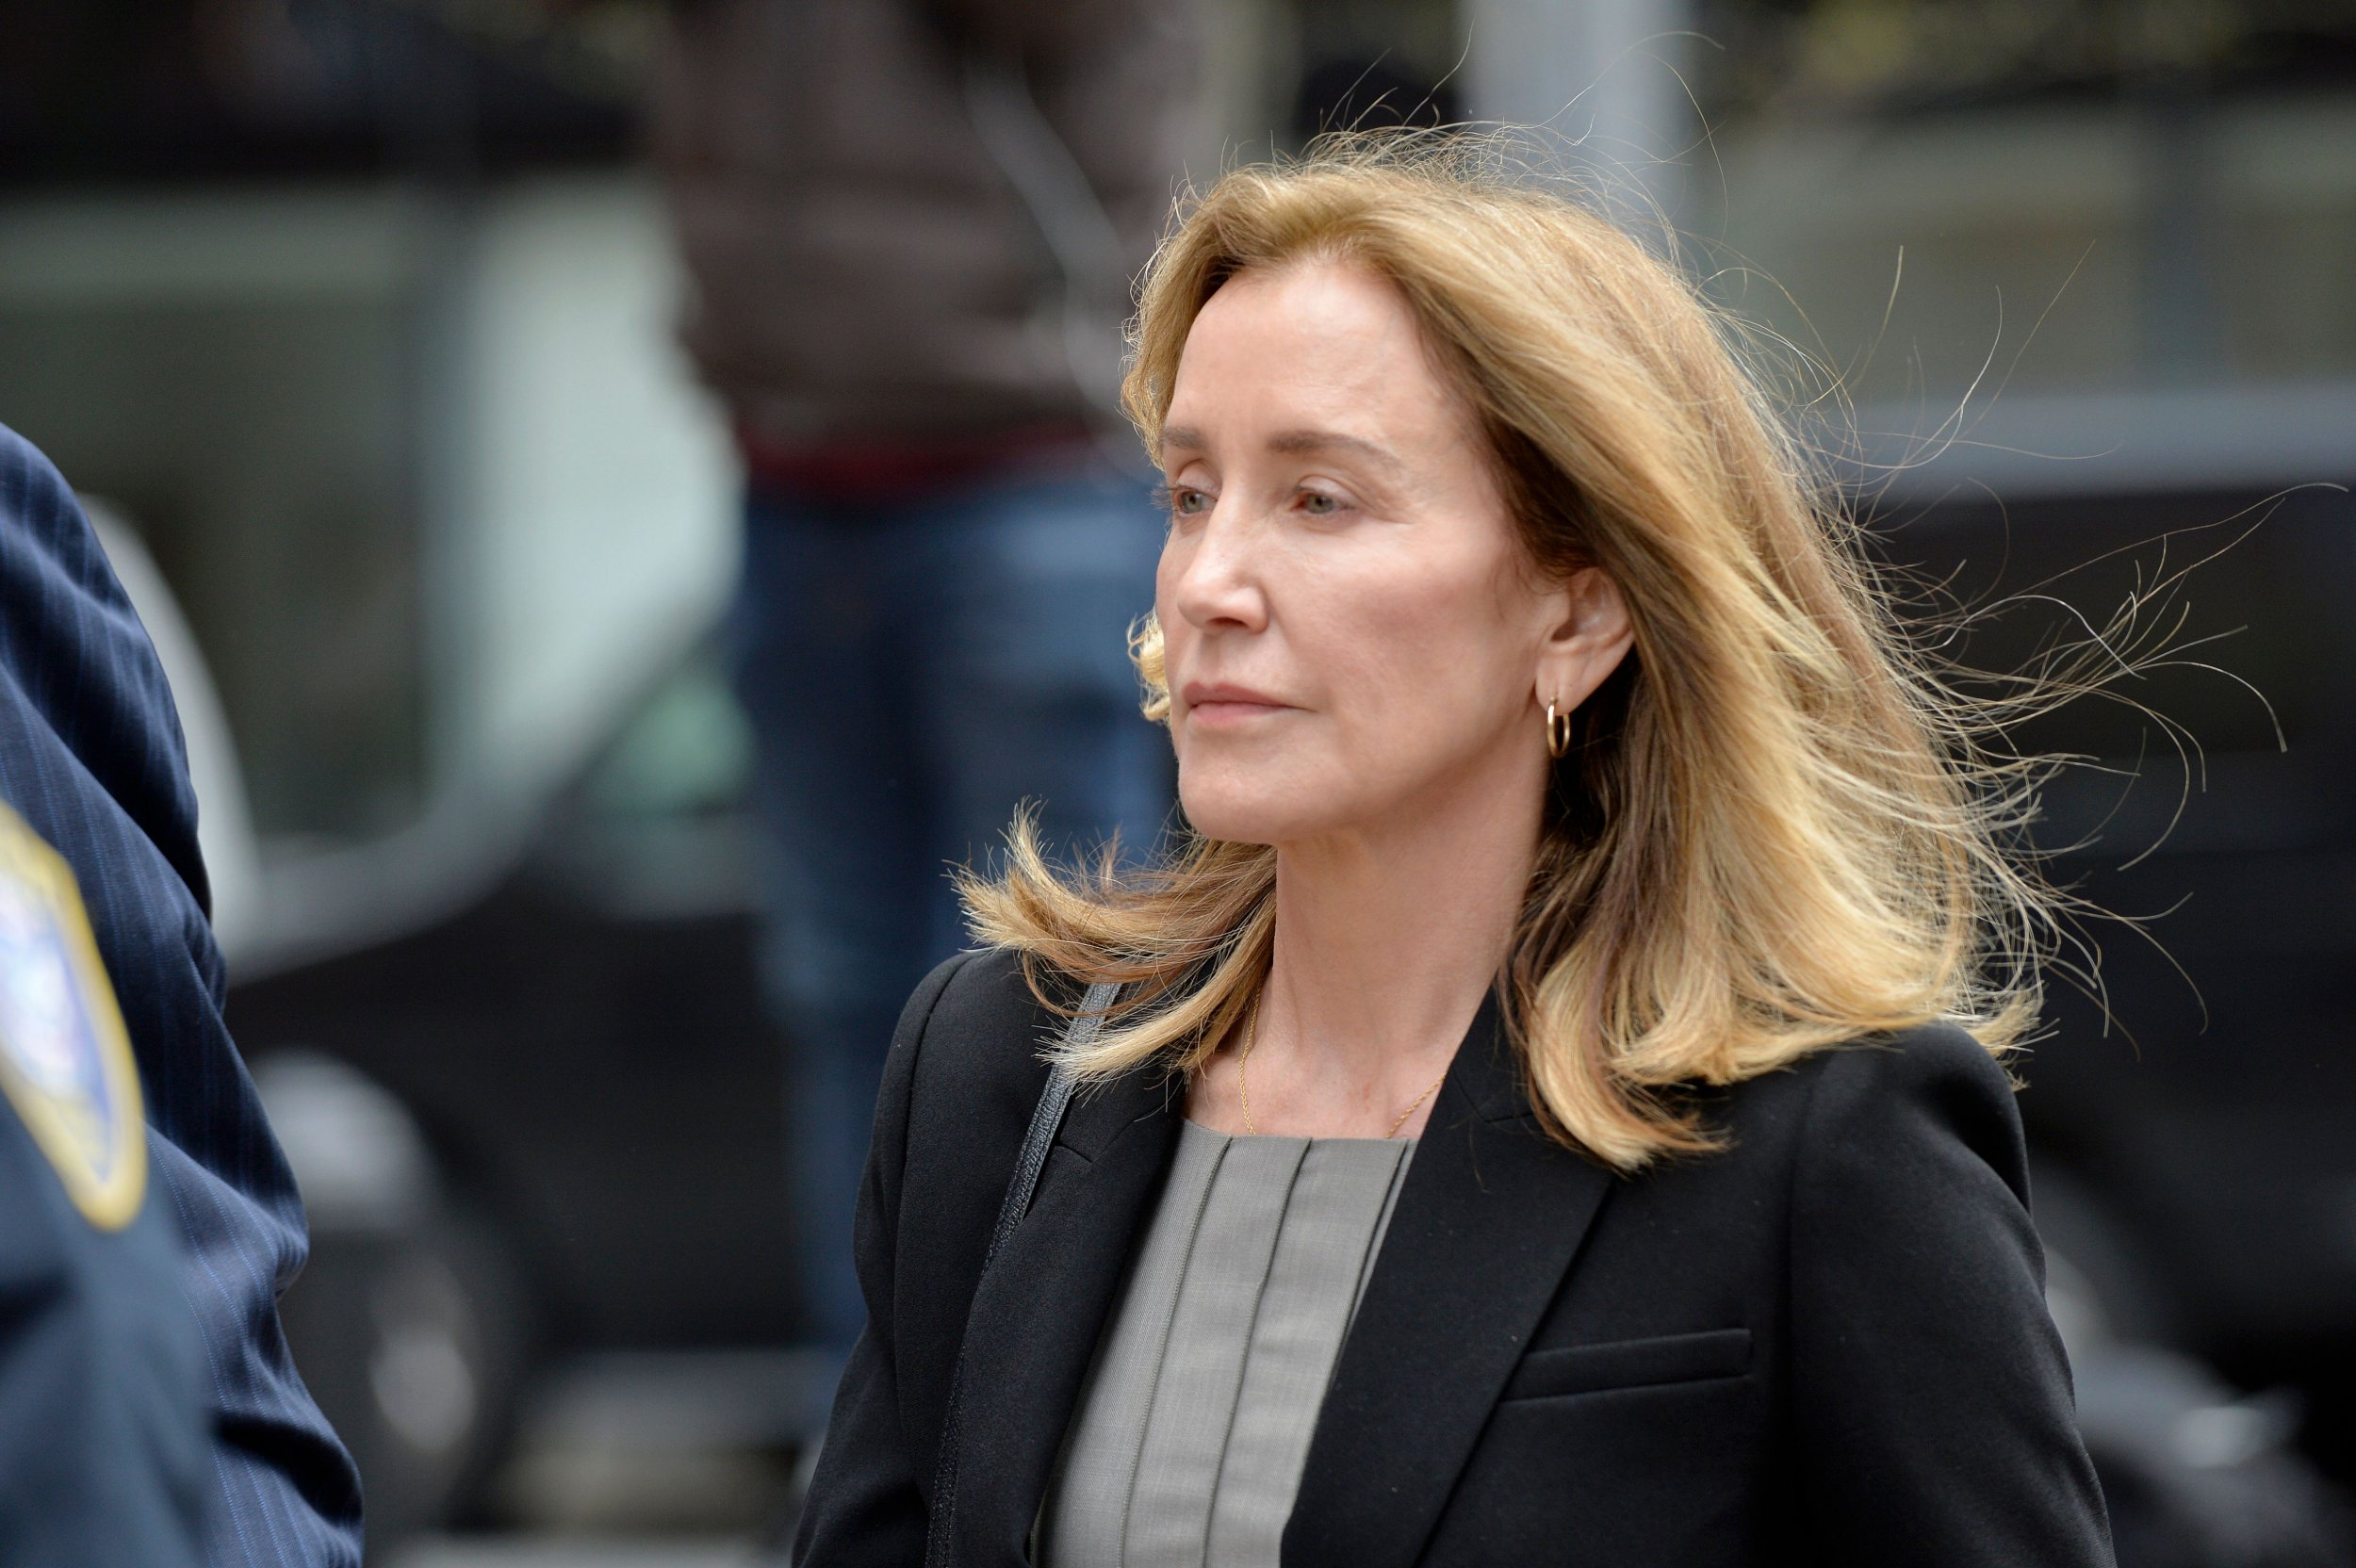 Felicity Huffman To Be Sentenced In September After Pleading Guilty